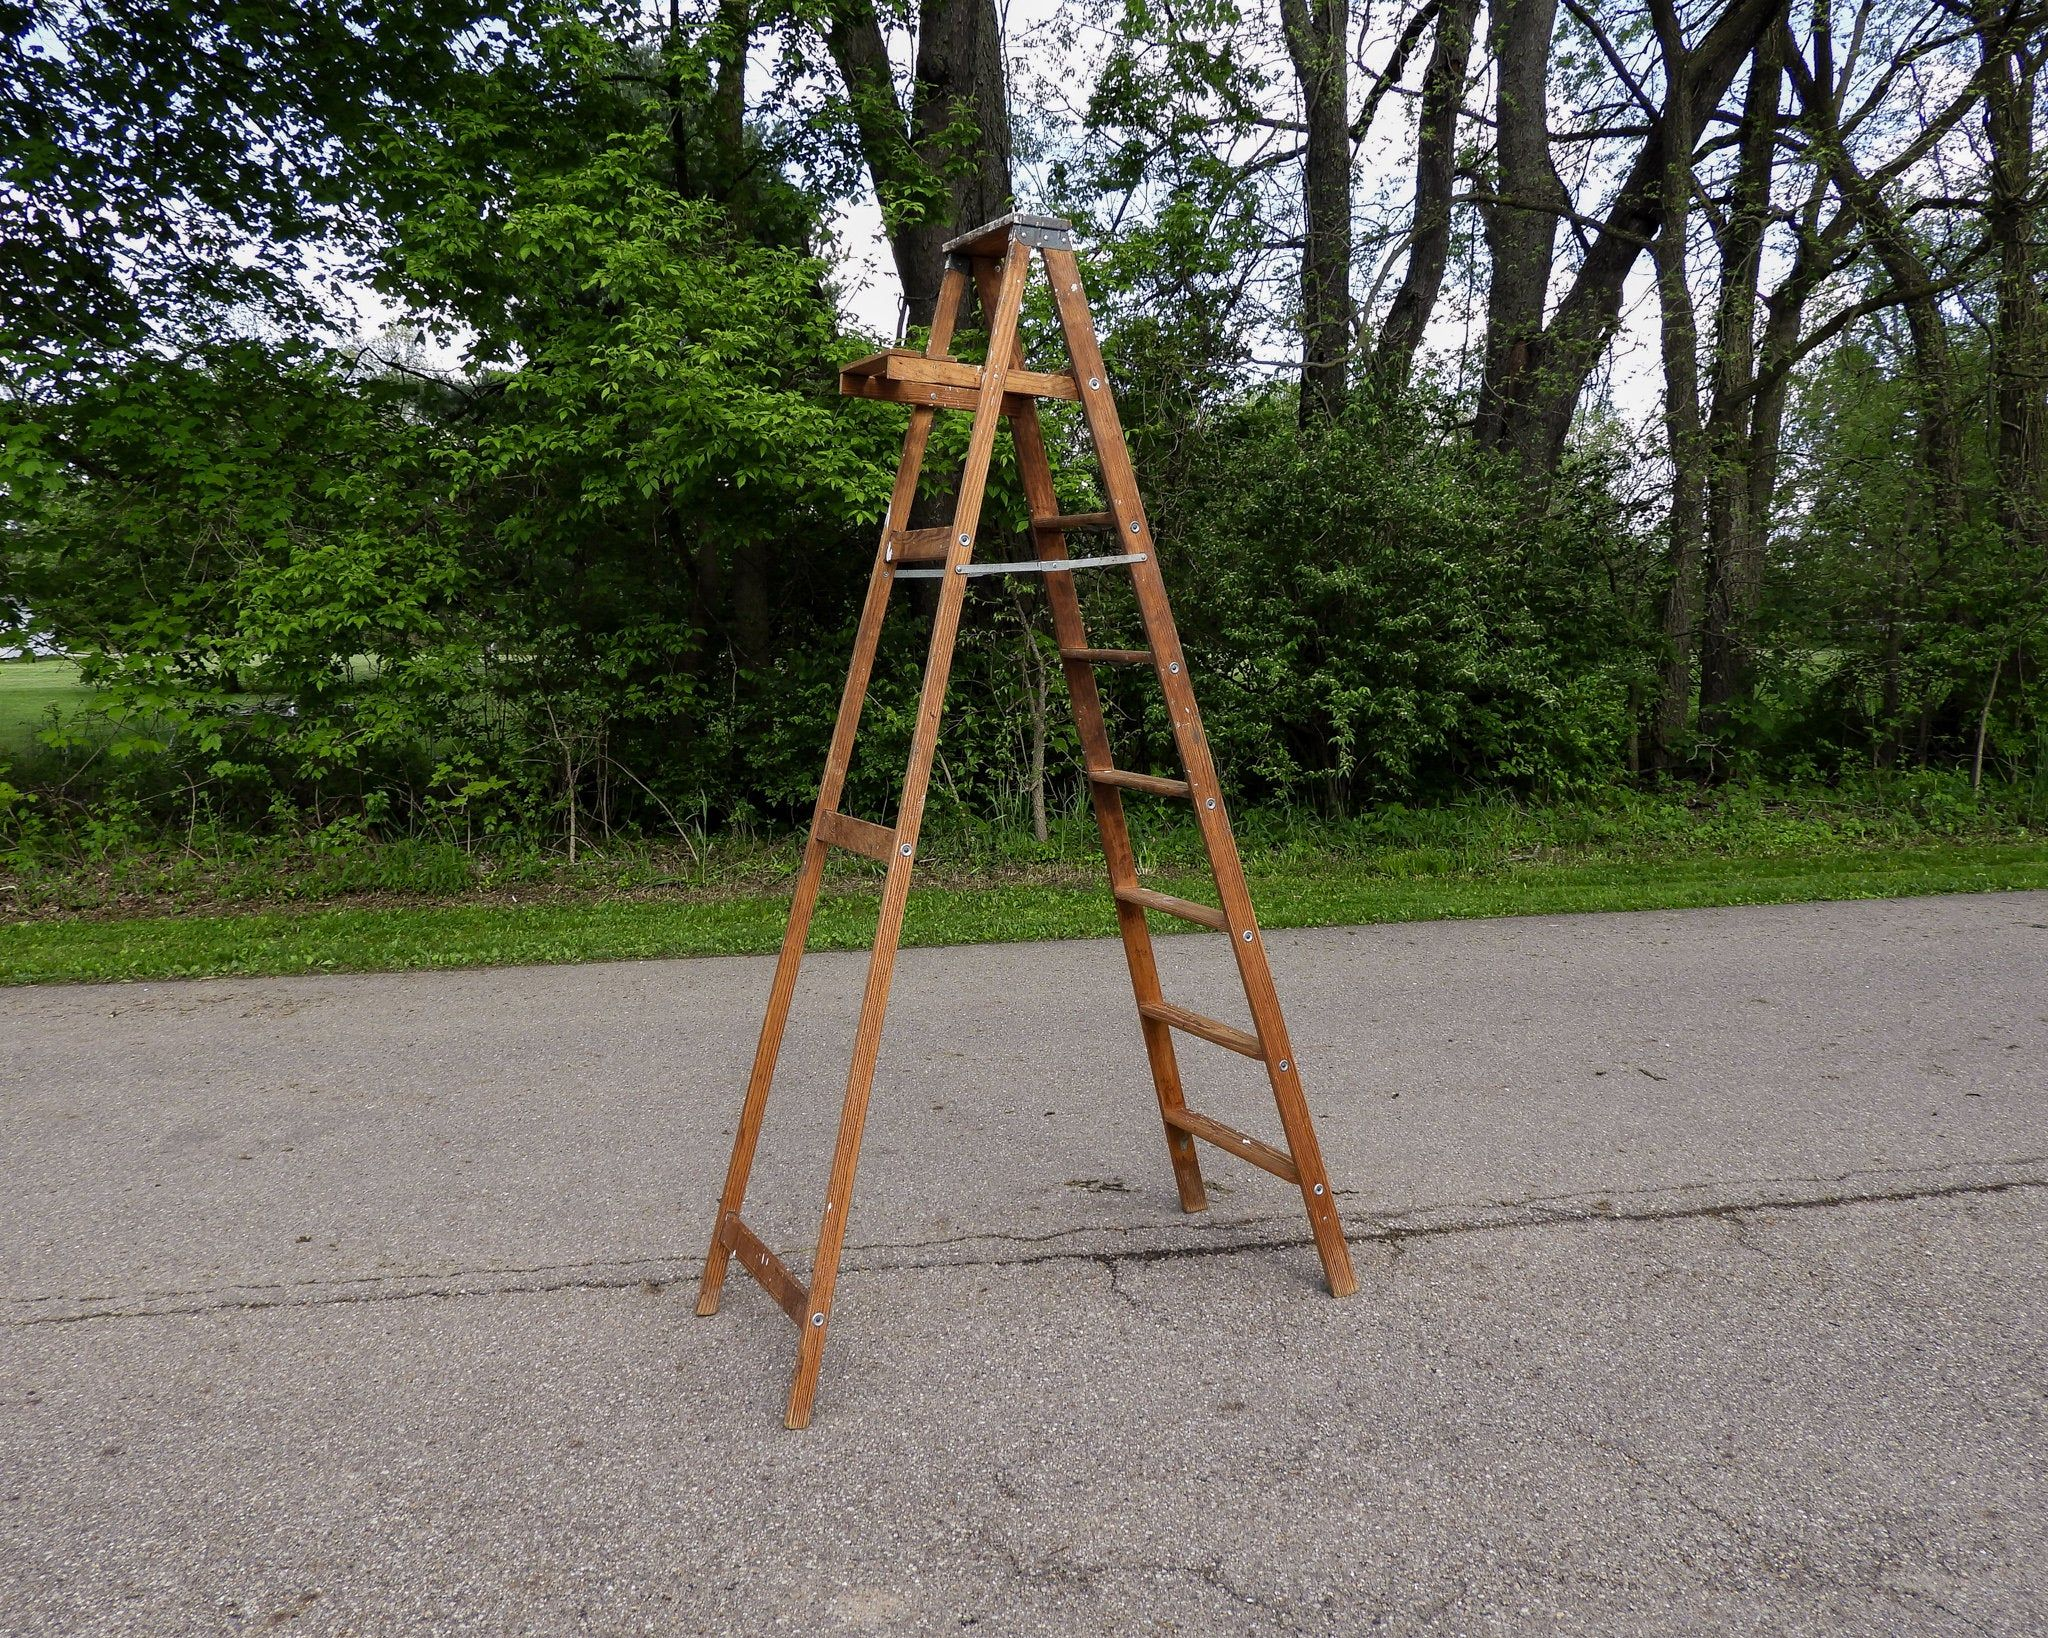 Vintage Step Ladder Wood Archbold Wooden Rack 8 Ft 225 Etsy In 2020 Wooden Rack Quilt Display Step Ladders